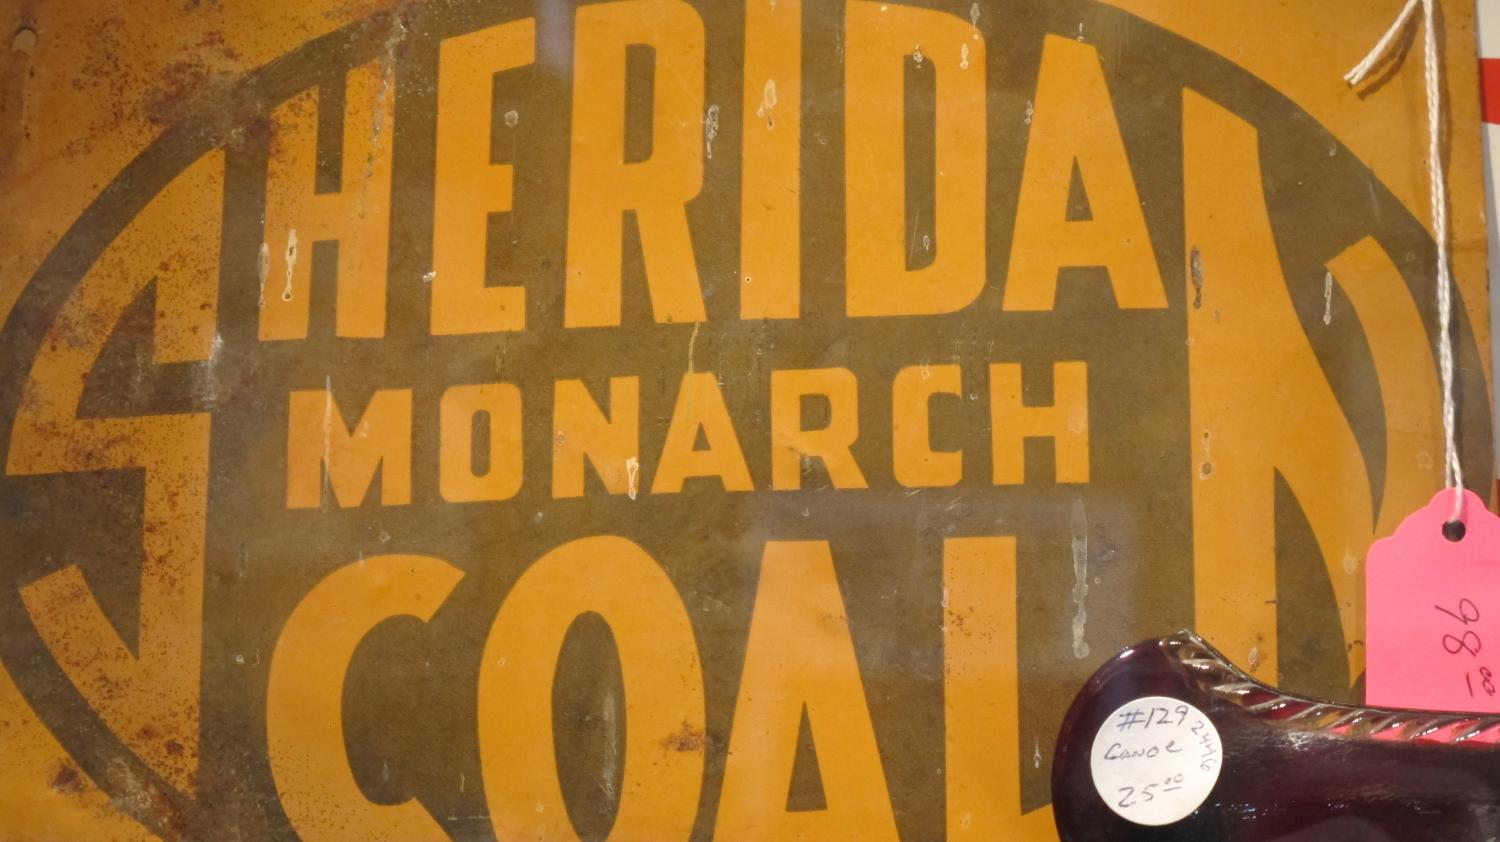 Sheridan Coal Mining Signs